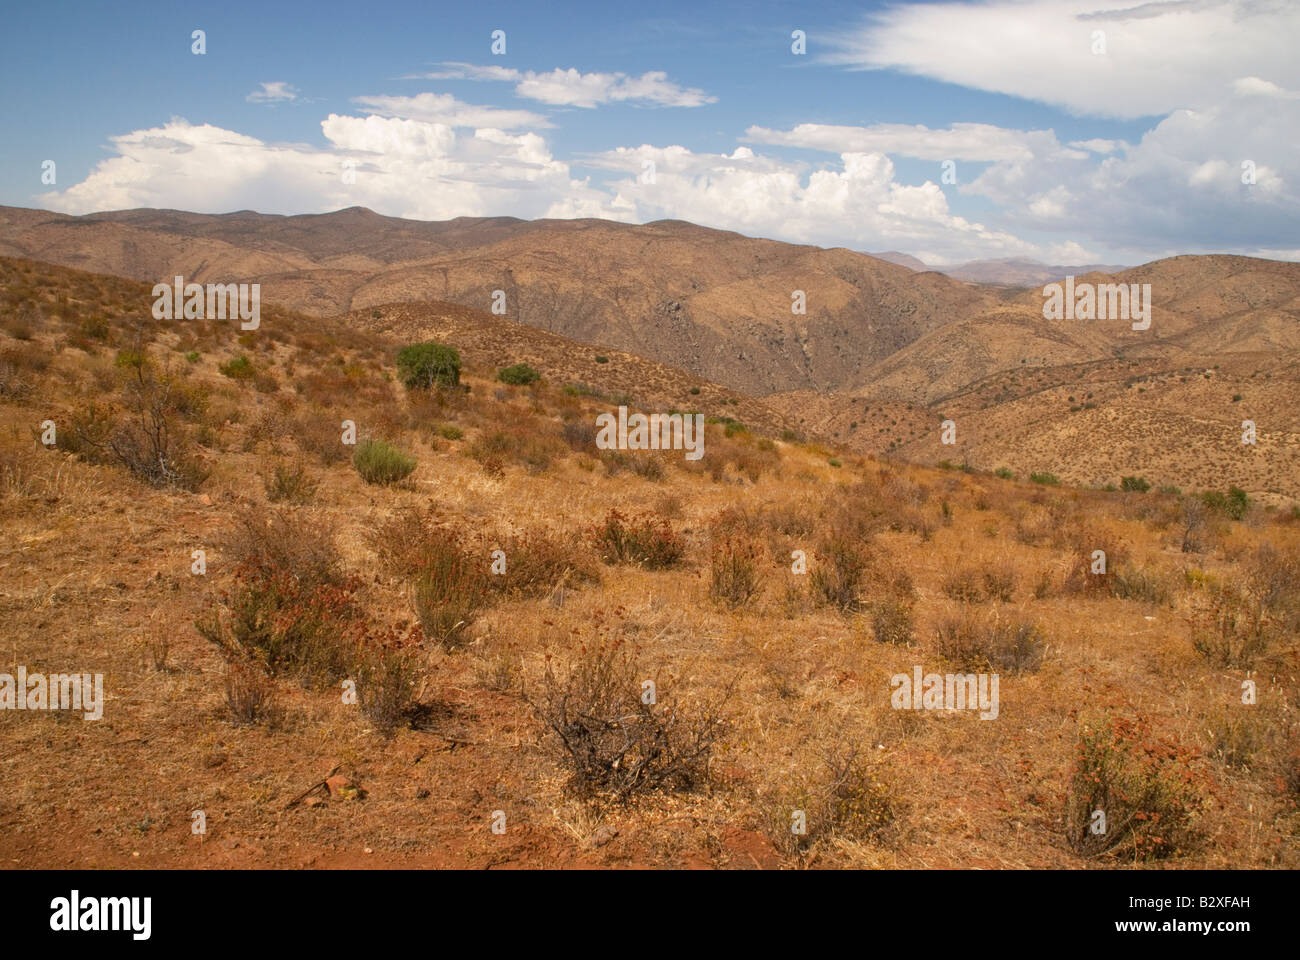 rolling hills in the desert of Baja California Mexico. Attractive southwest colors paint the landscape - Stock Image